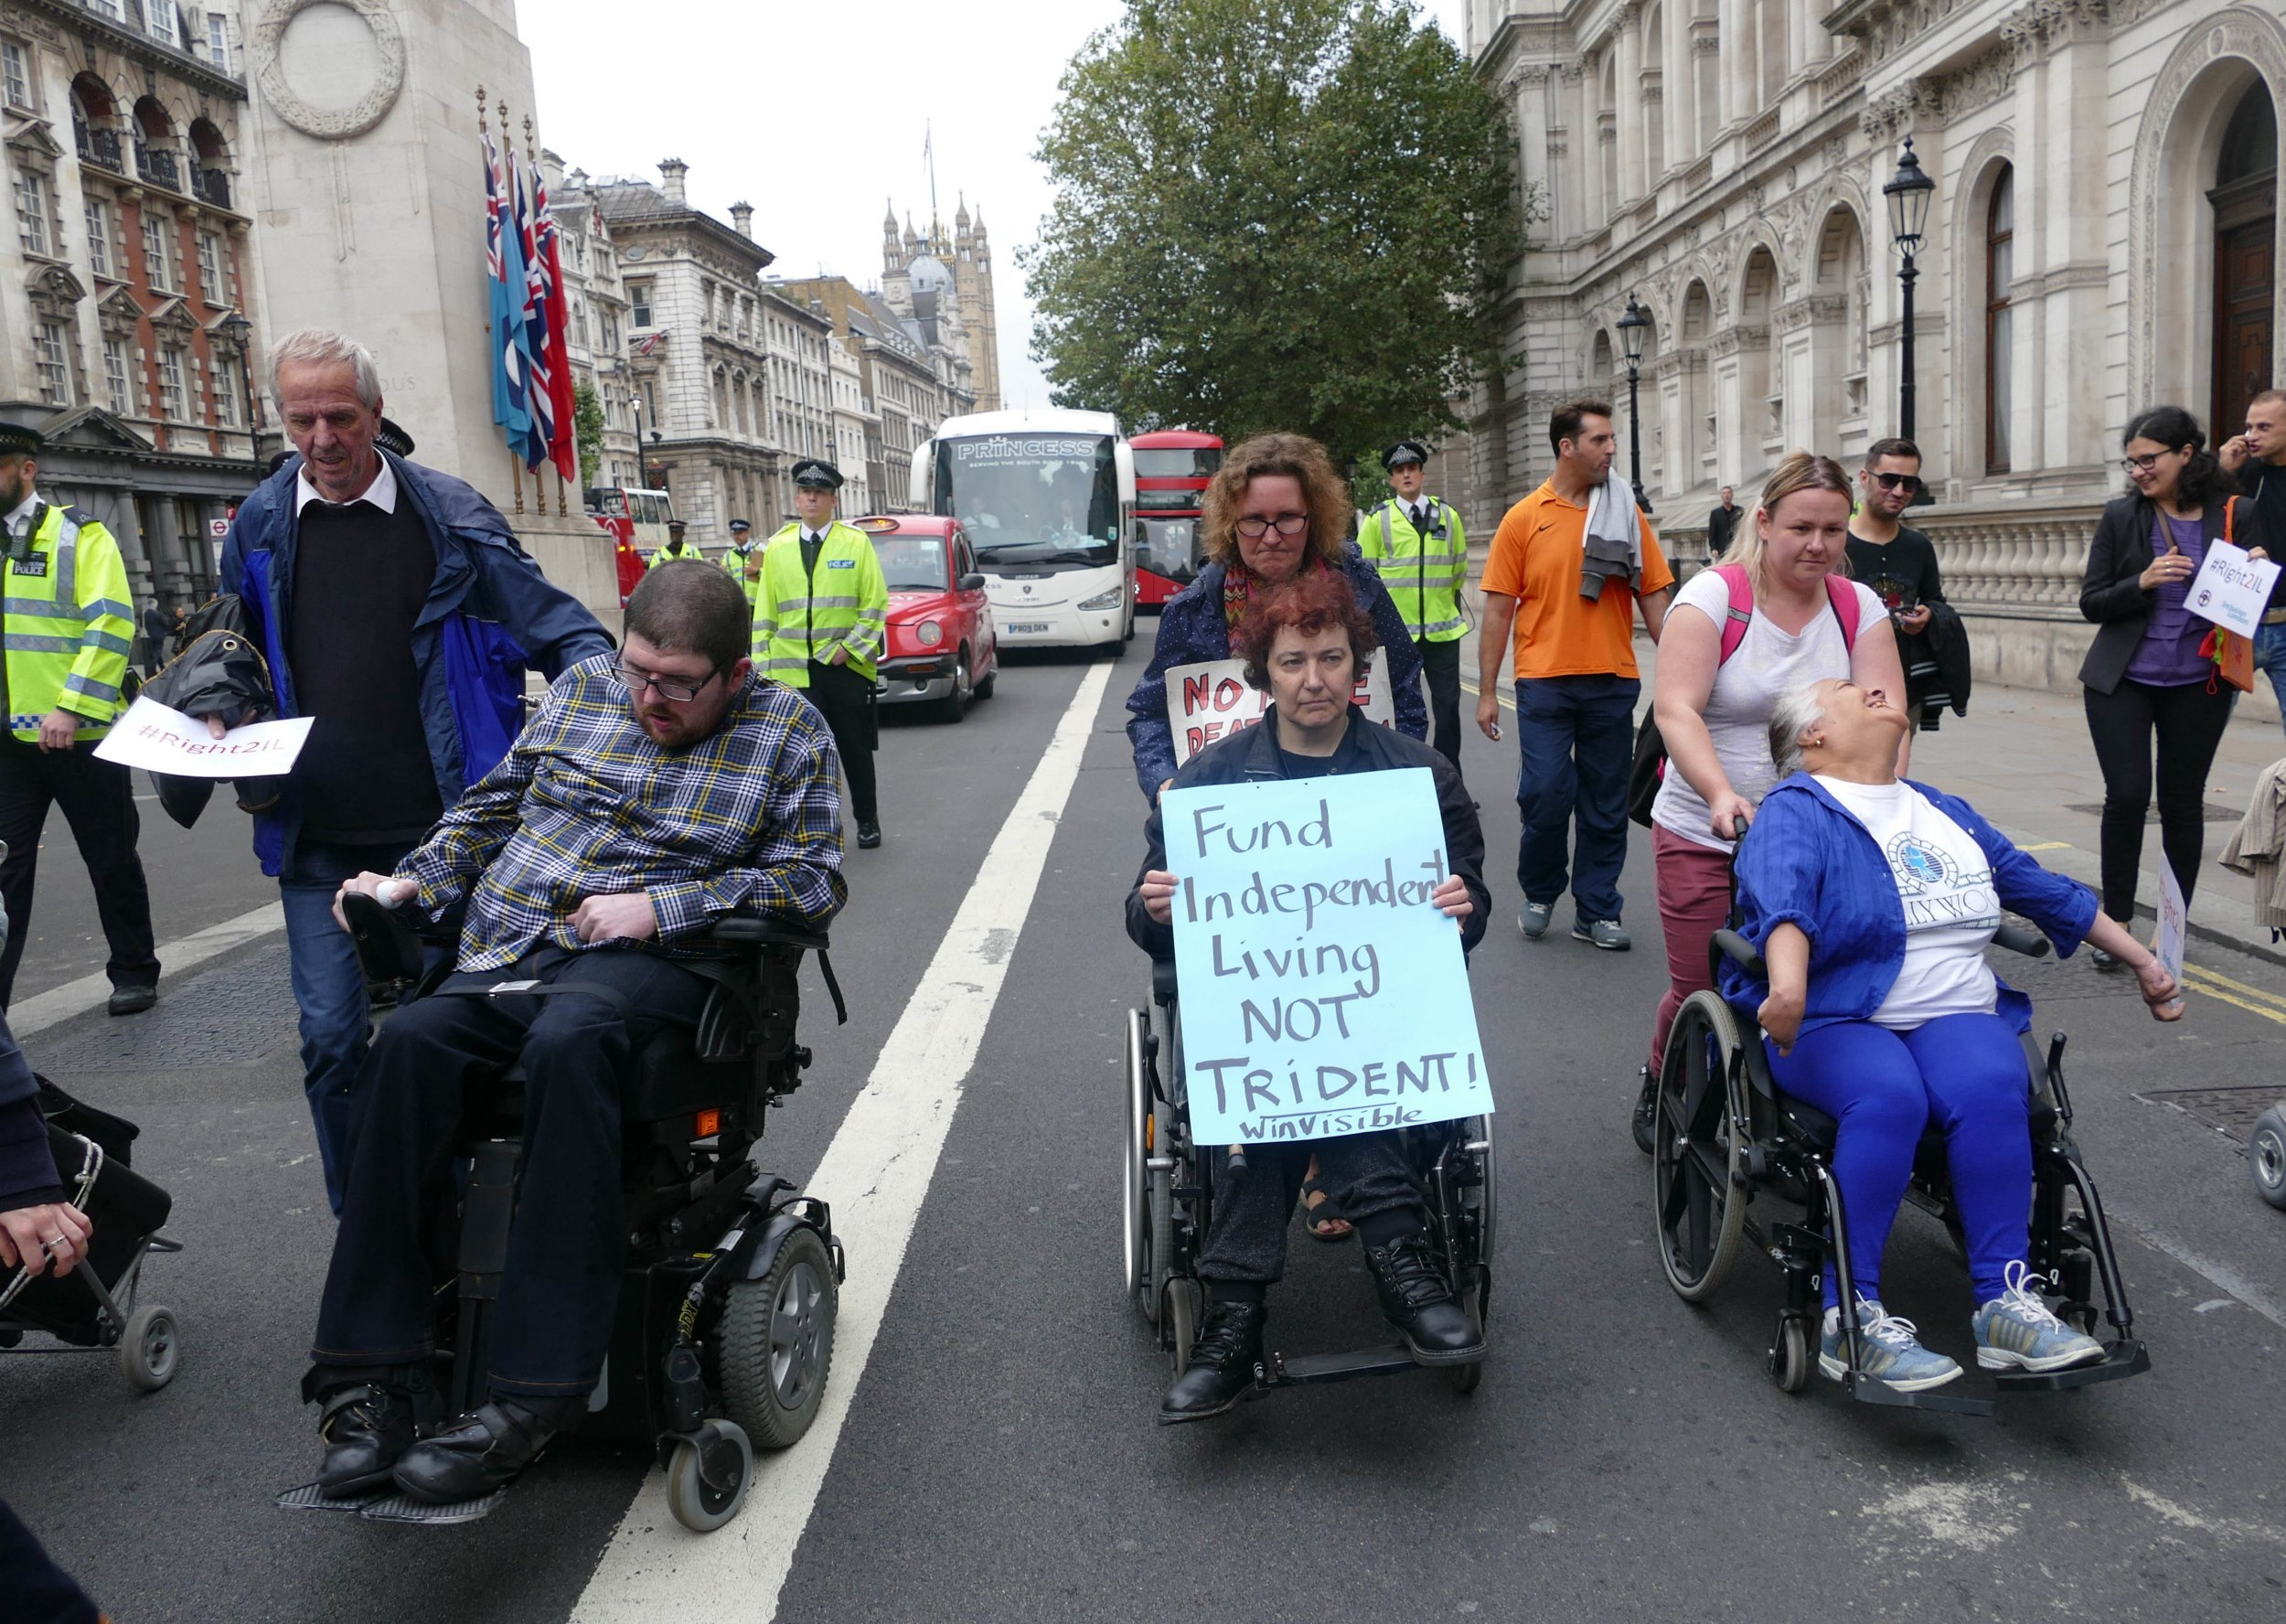 Disabled People Against Cuts (DPAC) performed a Street Theatre demonstration in front of Number 10 Downing Street in London, England, on September 6, 2016. The group paid homage to Independent living using poetry and singing drawing attention to the effects the Austerity cuts have had on their Independent living. They used the hashtag #Right2IL to garner support and recognition on Social Media. (Photo by Gail Orenstein/NurPhoto via Getty Images)